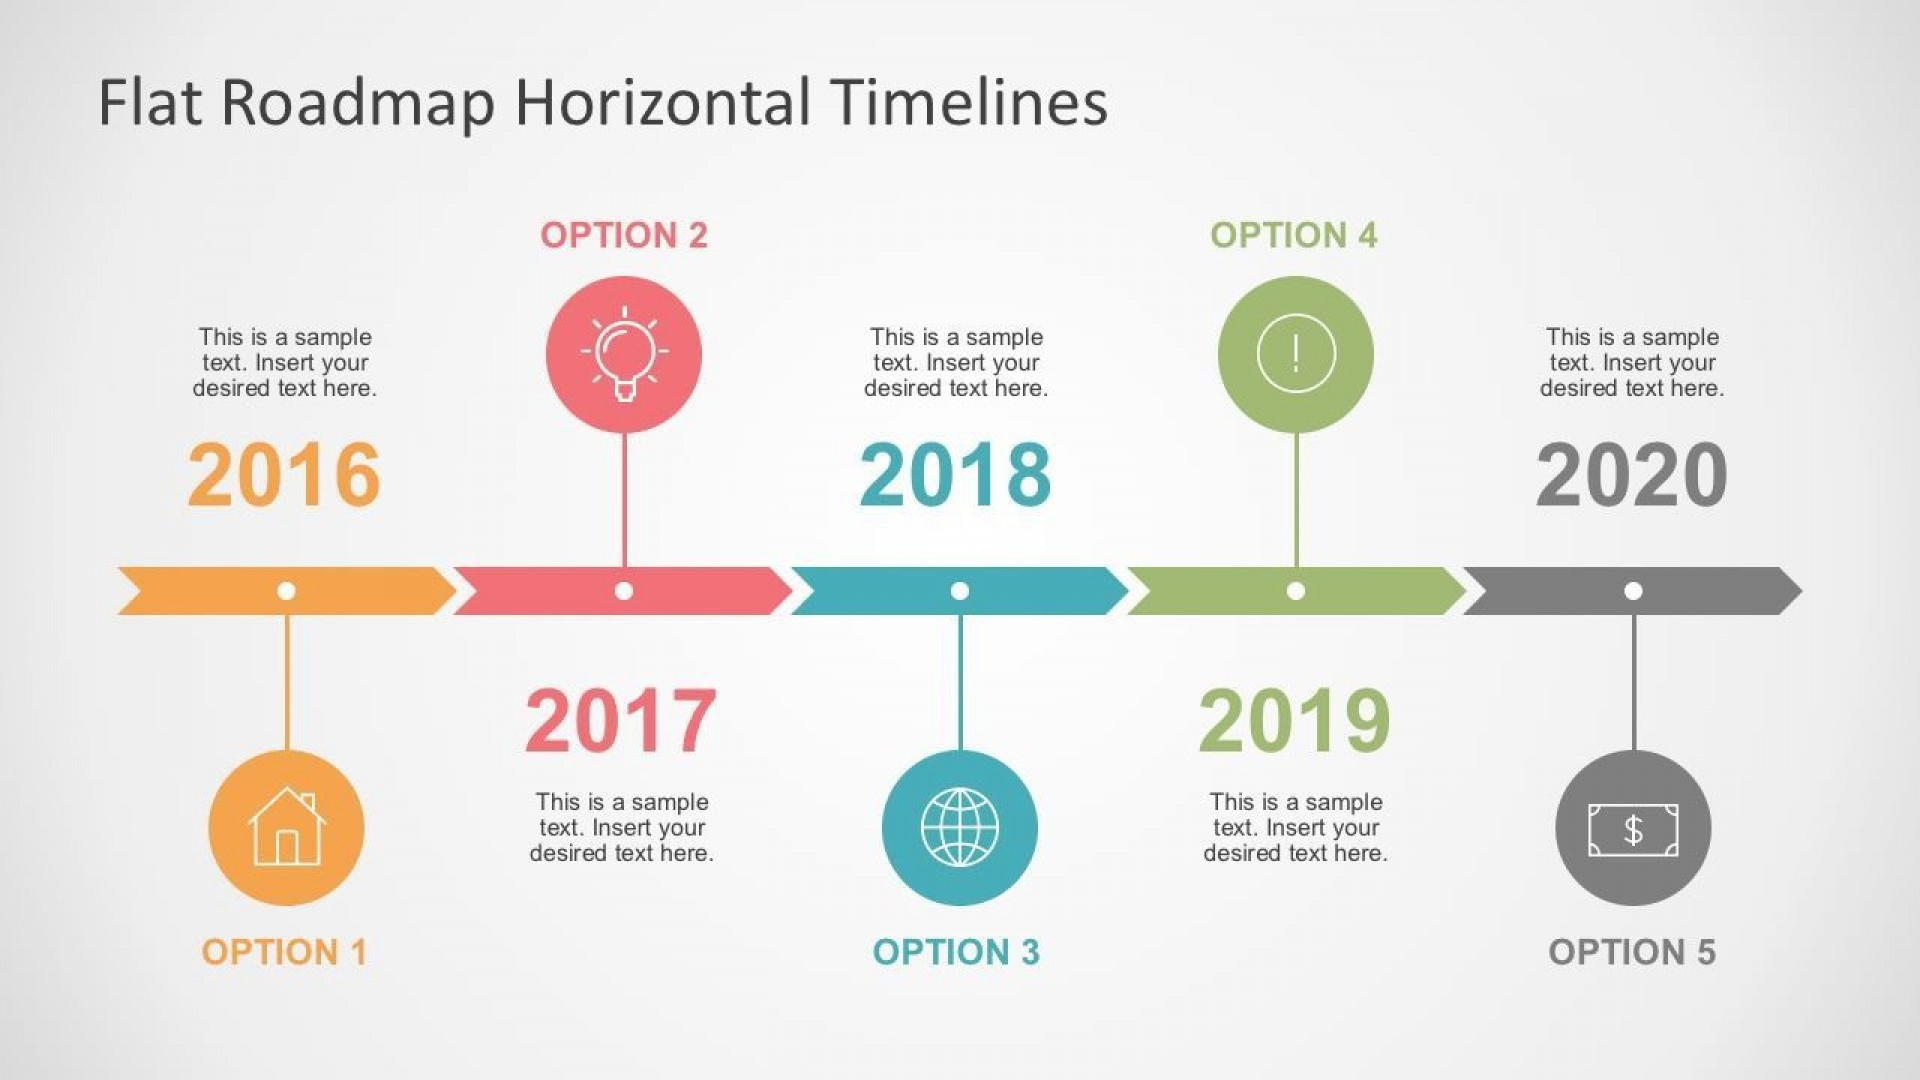 004 Astounding Timeline Template For Ppt Free Picture  Infographic Vertical Download1920